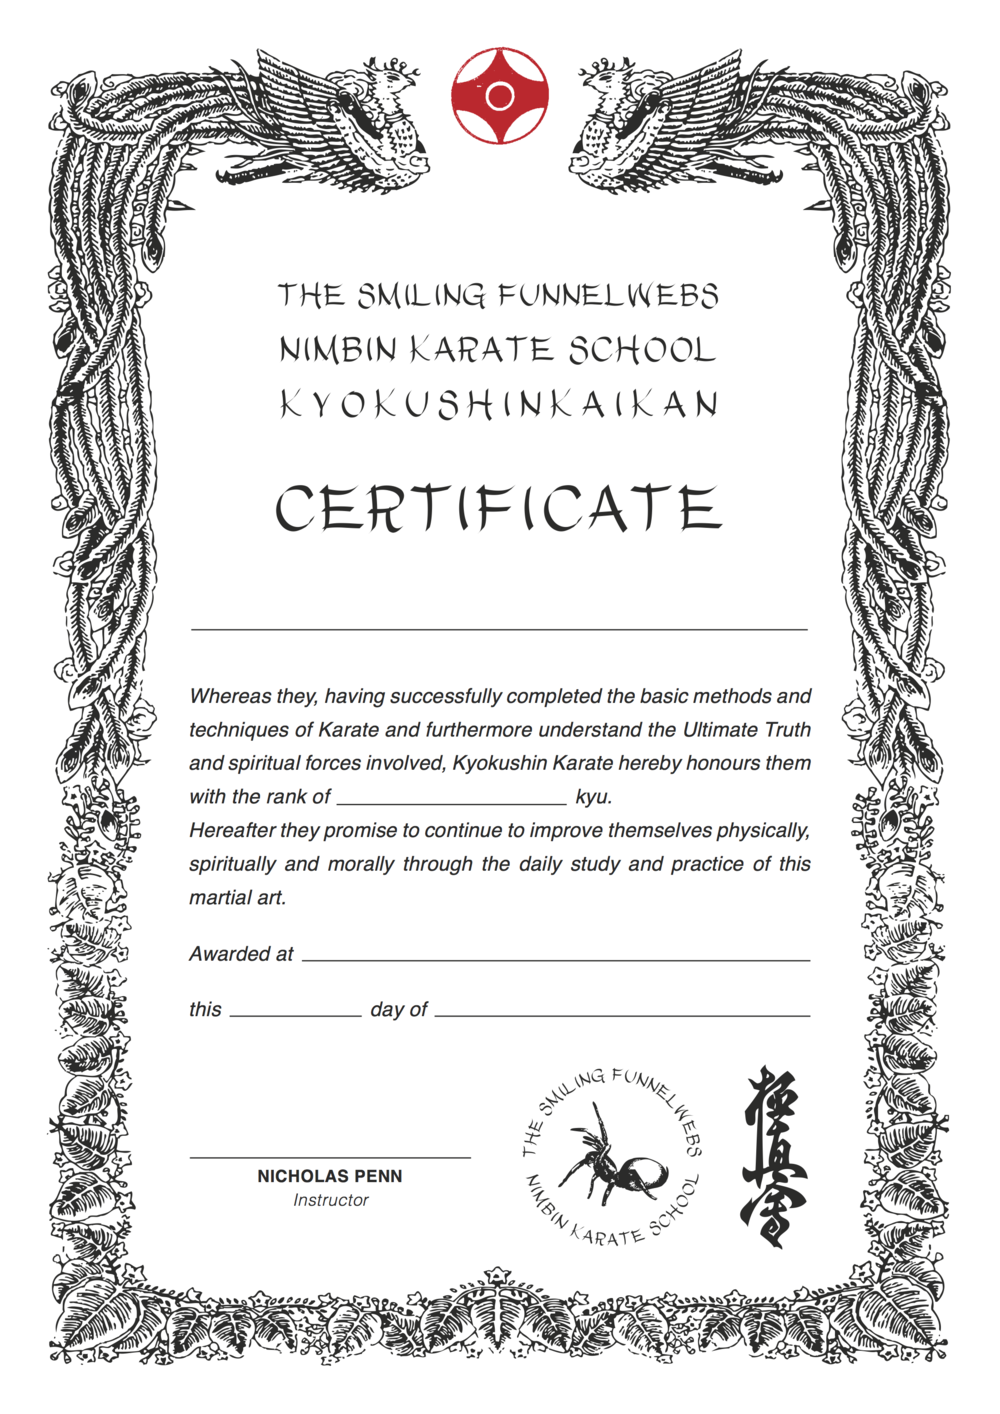 Karate black belt certificate templates images templates example black belt certificate template choice image templates example martial arts certificate templates free gallery templates karate yelopaper Images